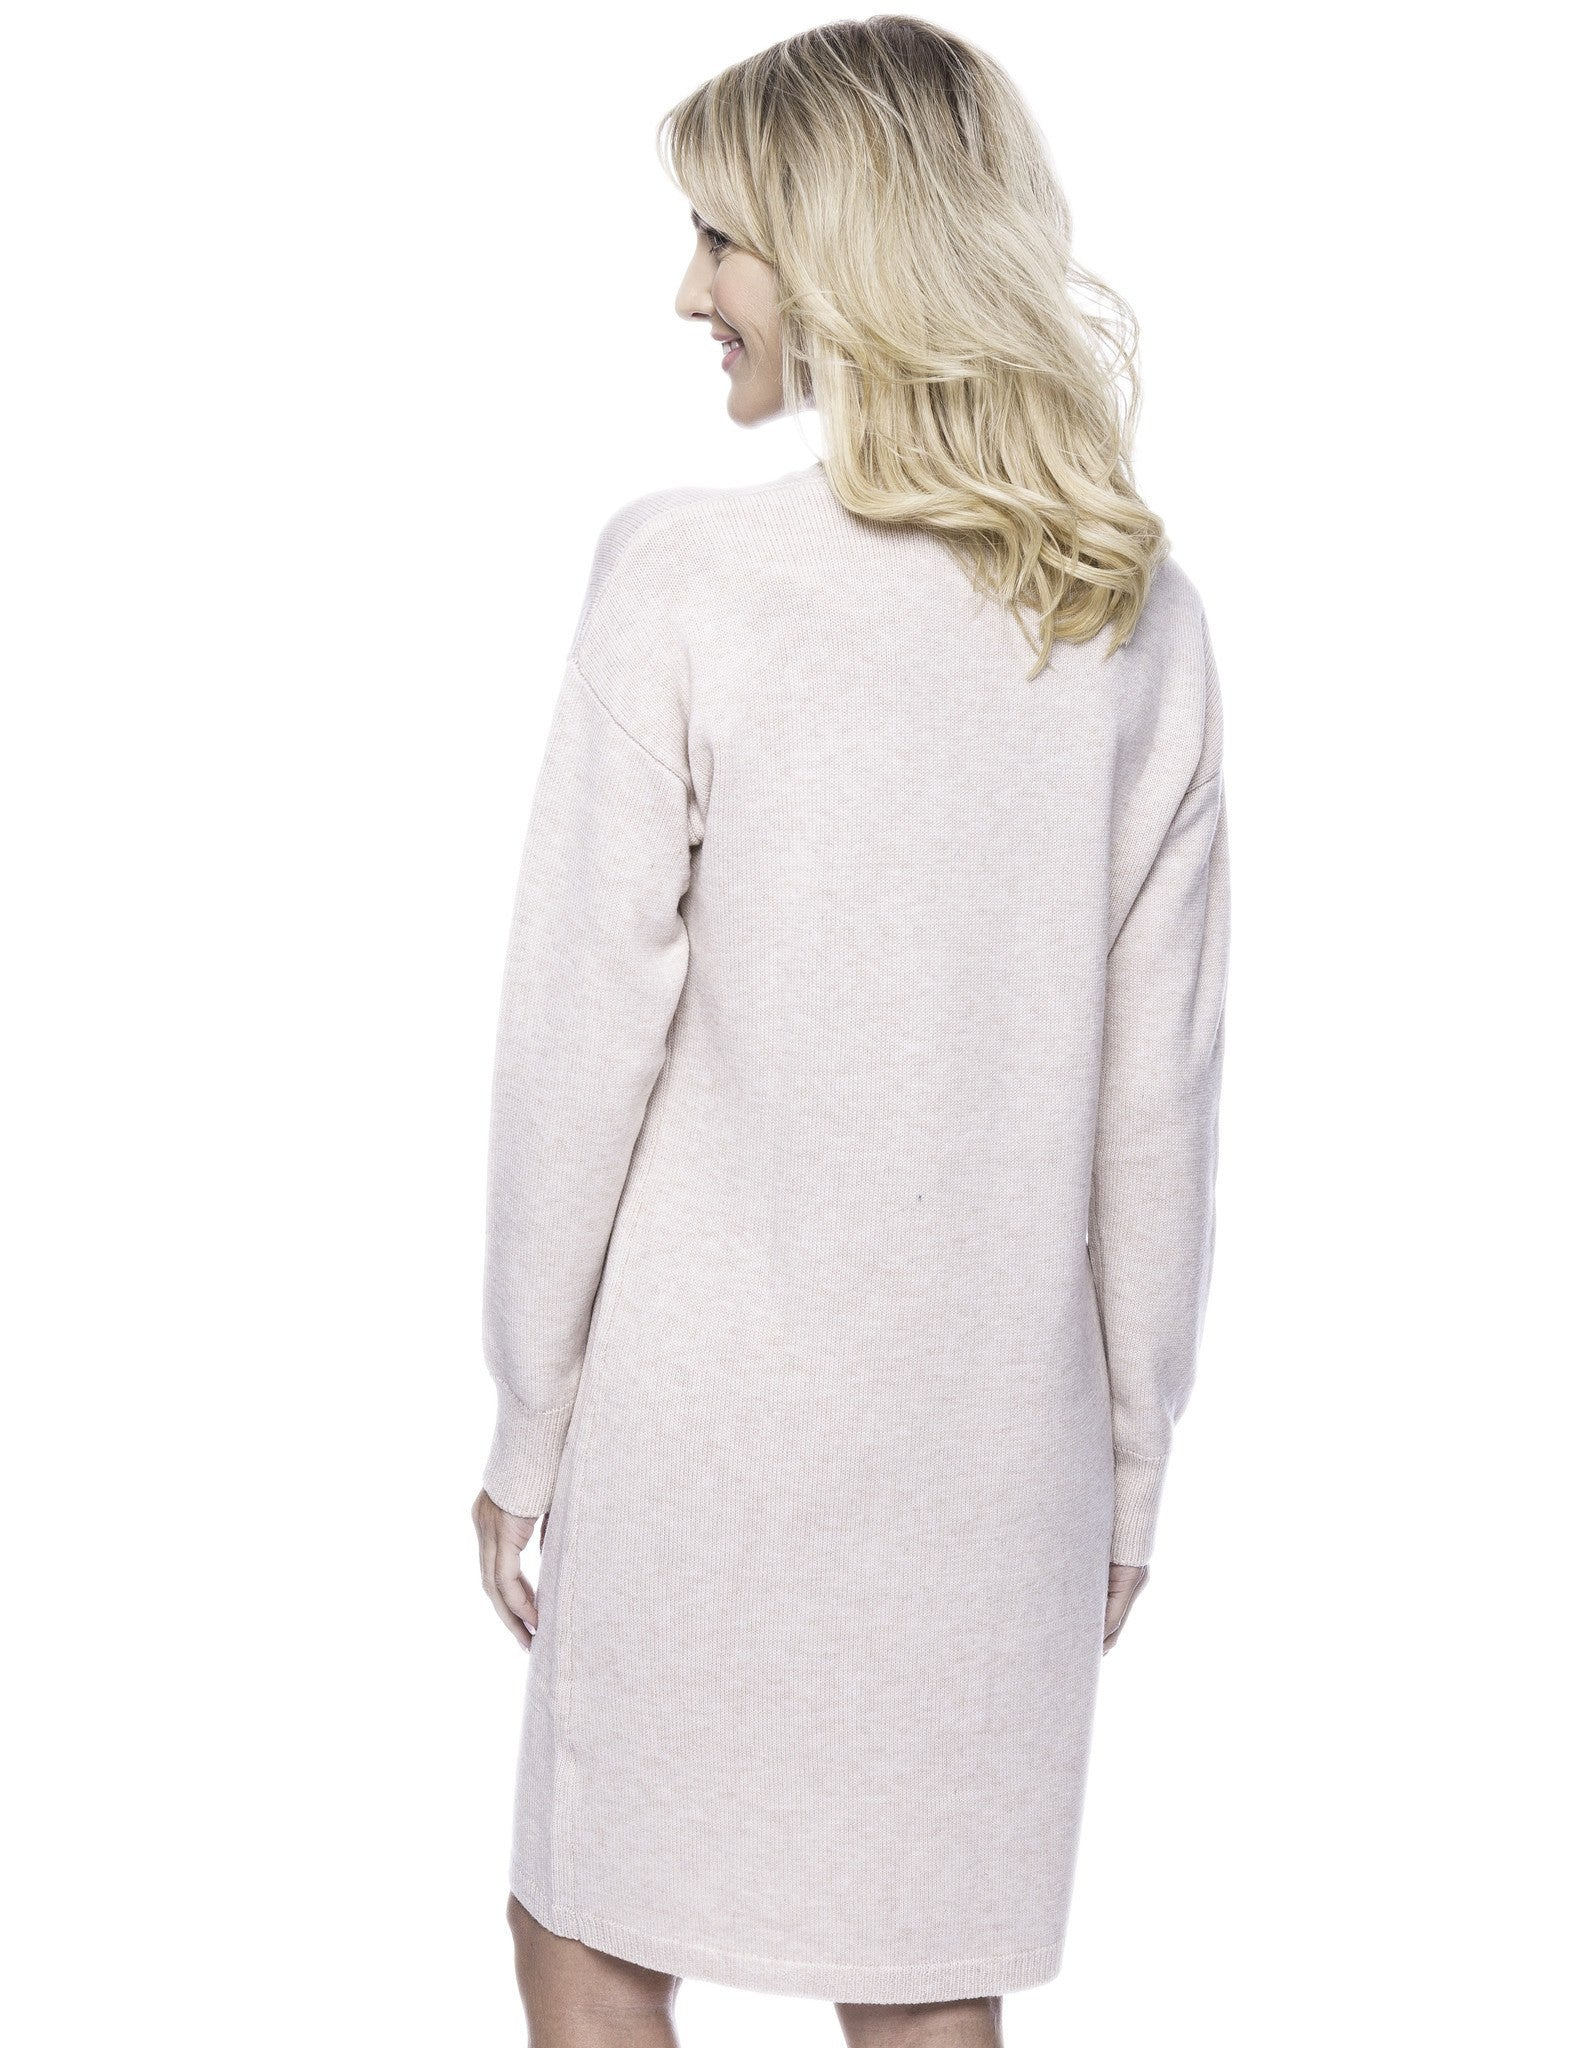 Tocco Reale Women's Wool Blend Sweater Dress - Oatmeal